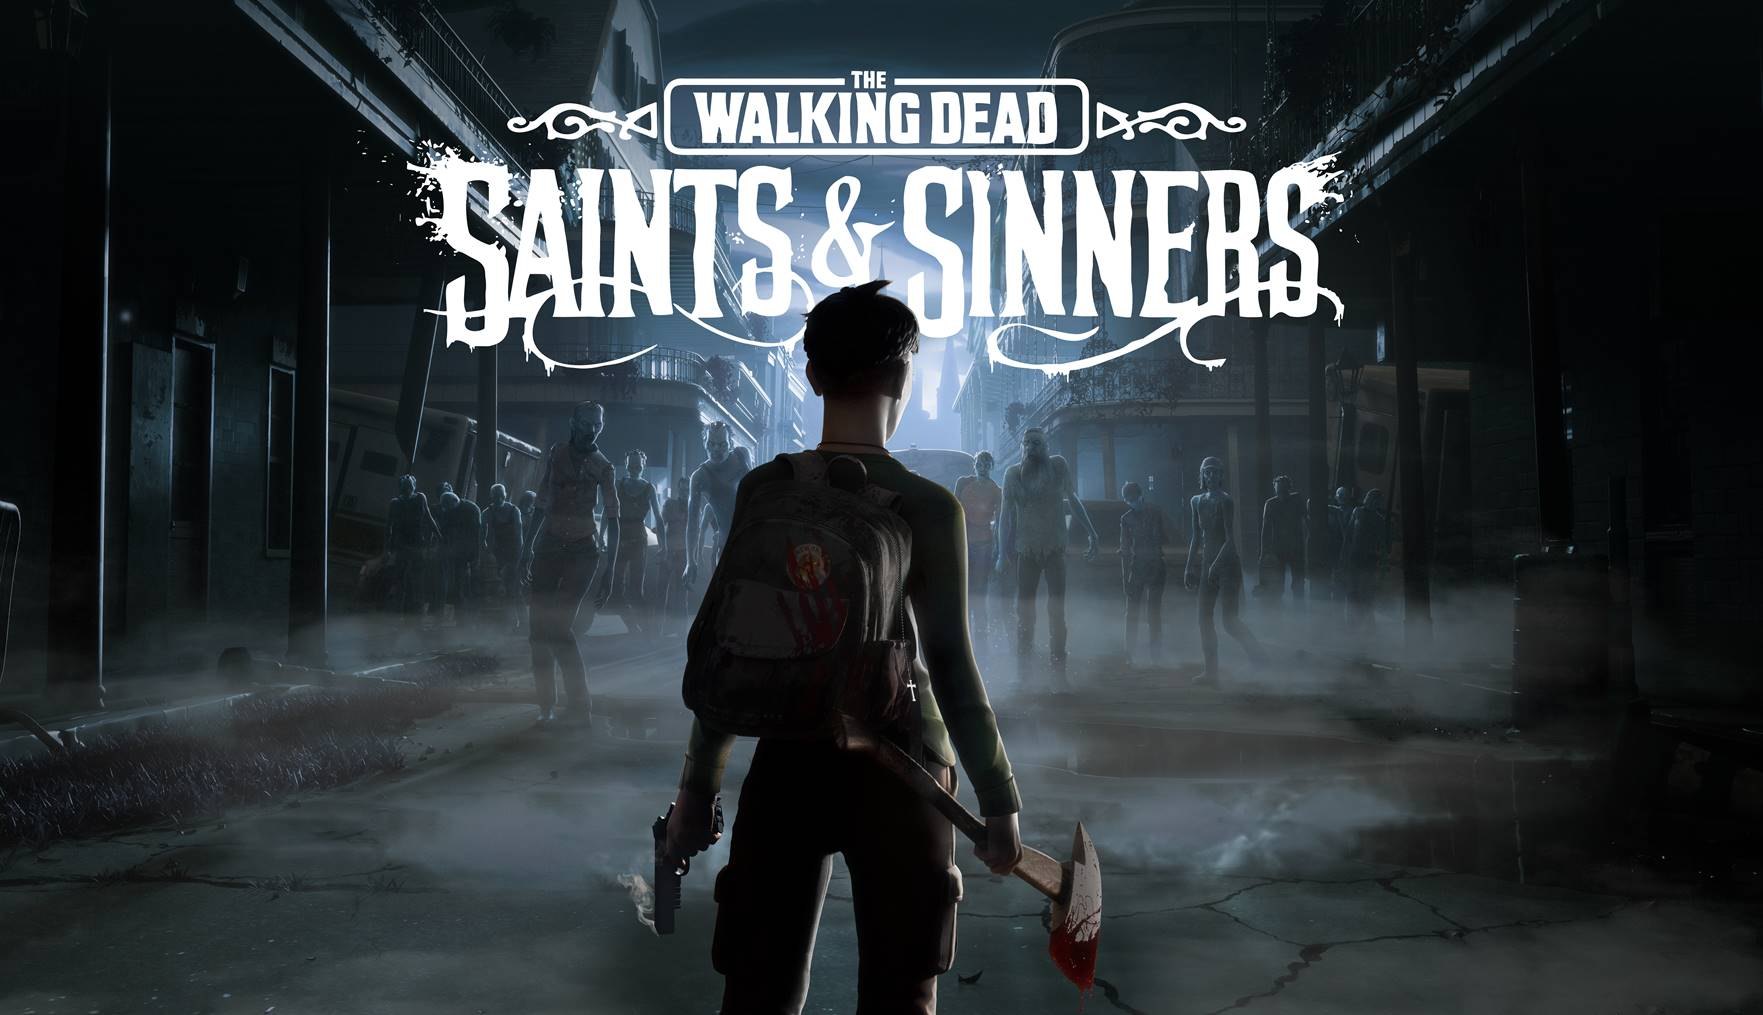 The Walking Dead Saints & Sinners đổ bộ lên PSVR